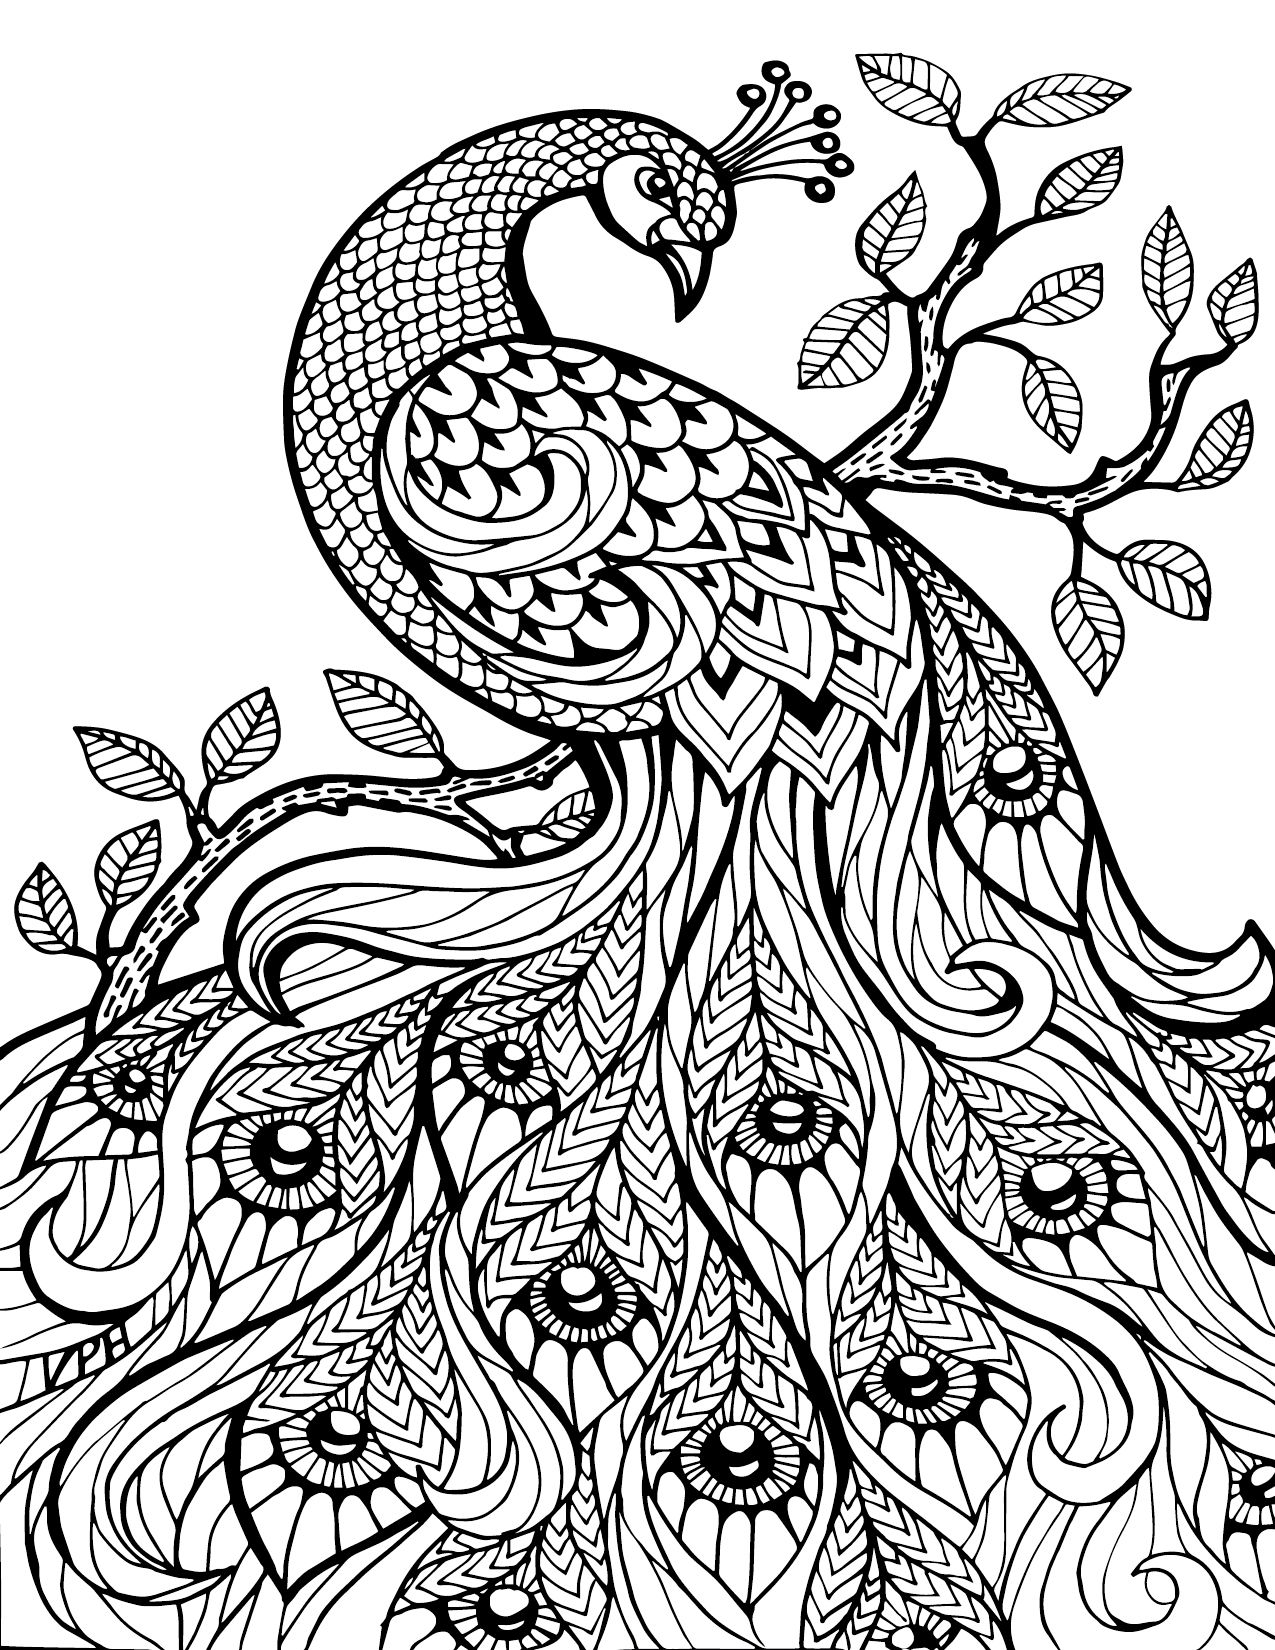 8 5 x 11 printable coloring pages - Free Printable Coloring Pages For Adults Only Image 36 Art Davlin Publishing